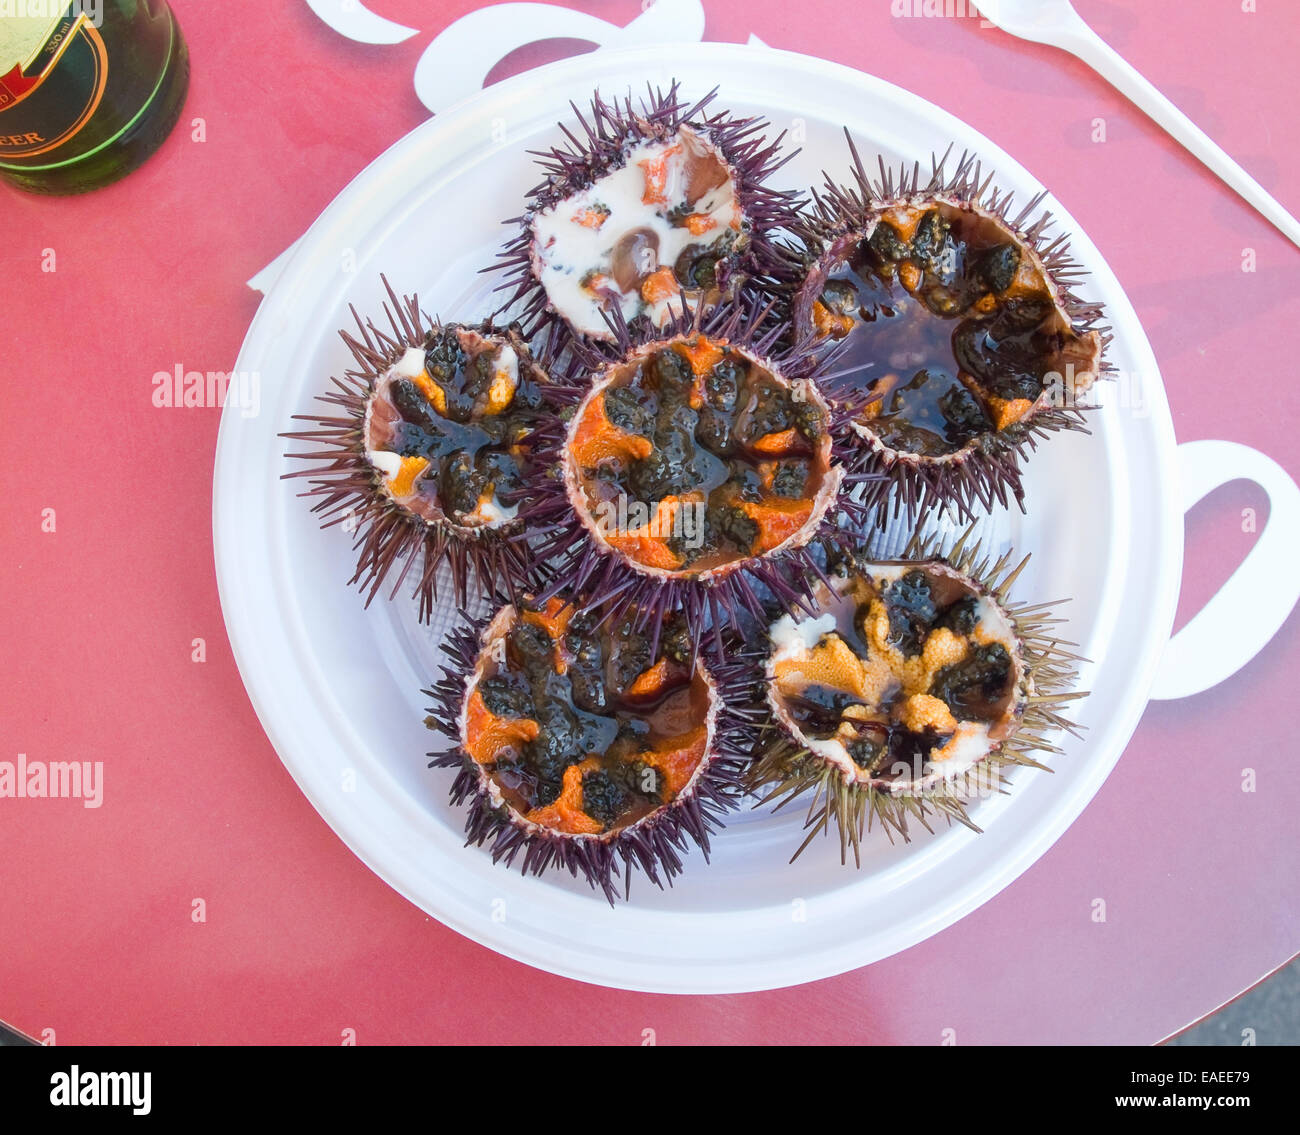 fresh sea urchin stock photo 75306541 alamy